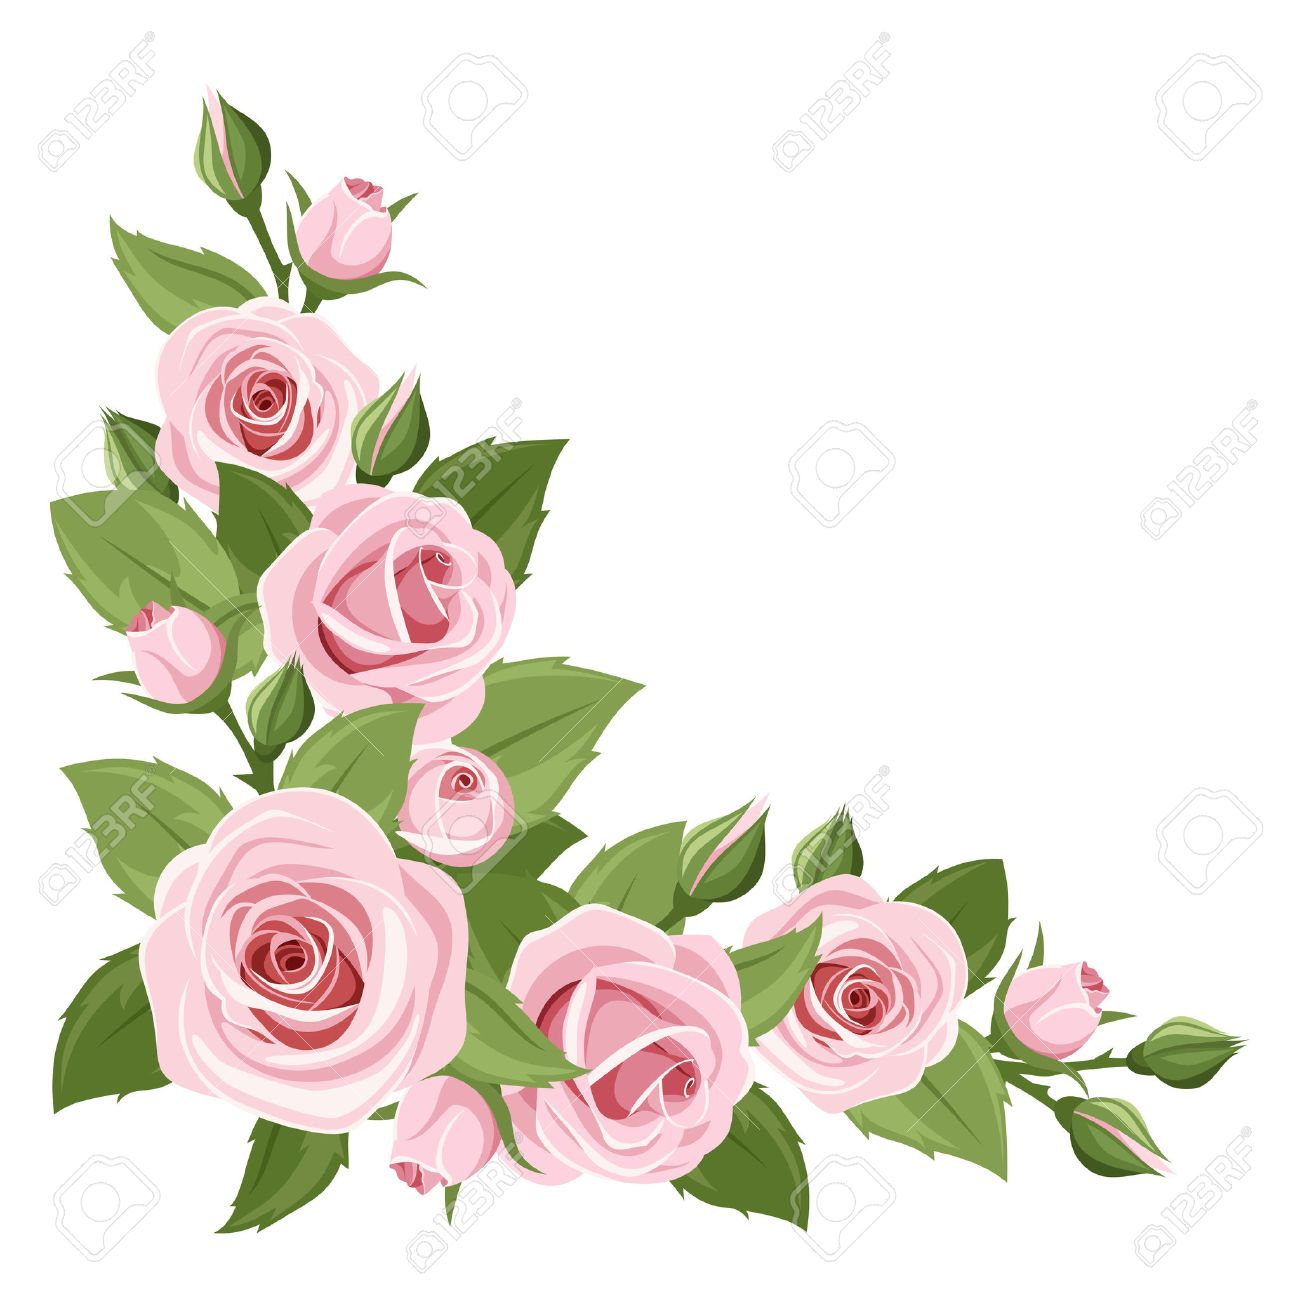 Pink roses clipart free 2 » Clipart Station.